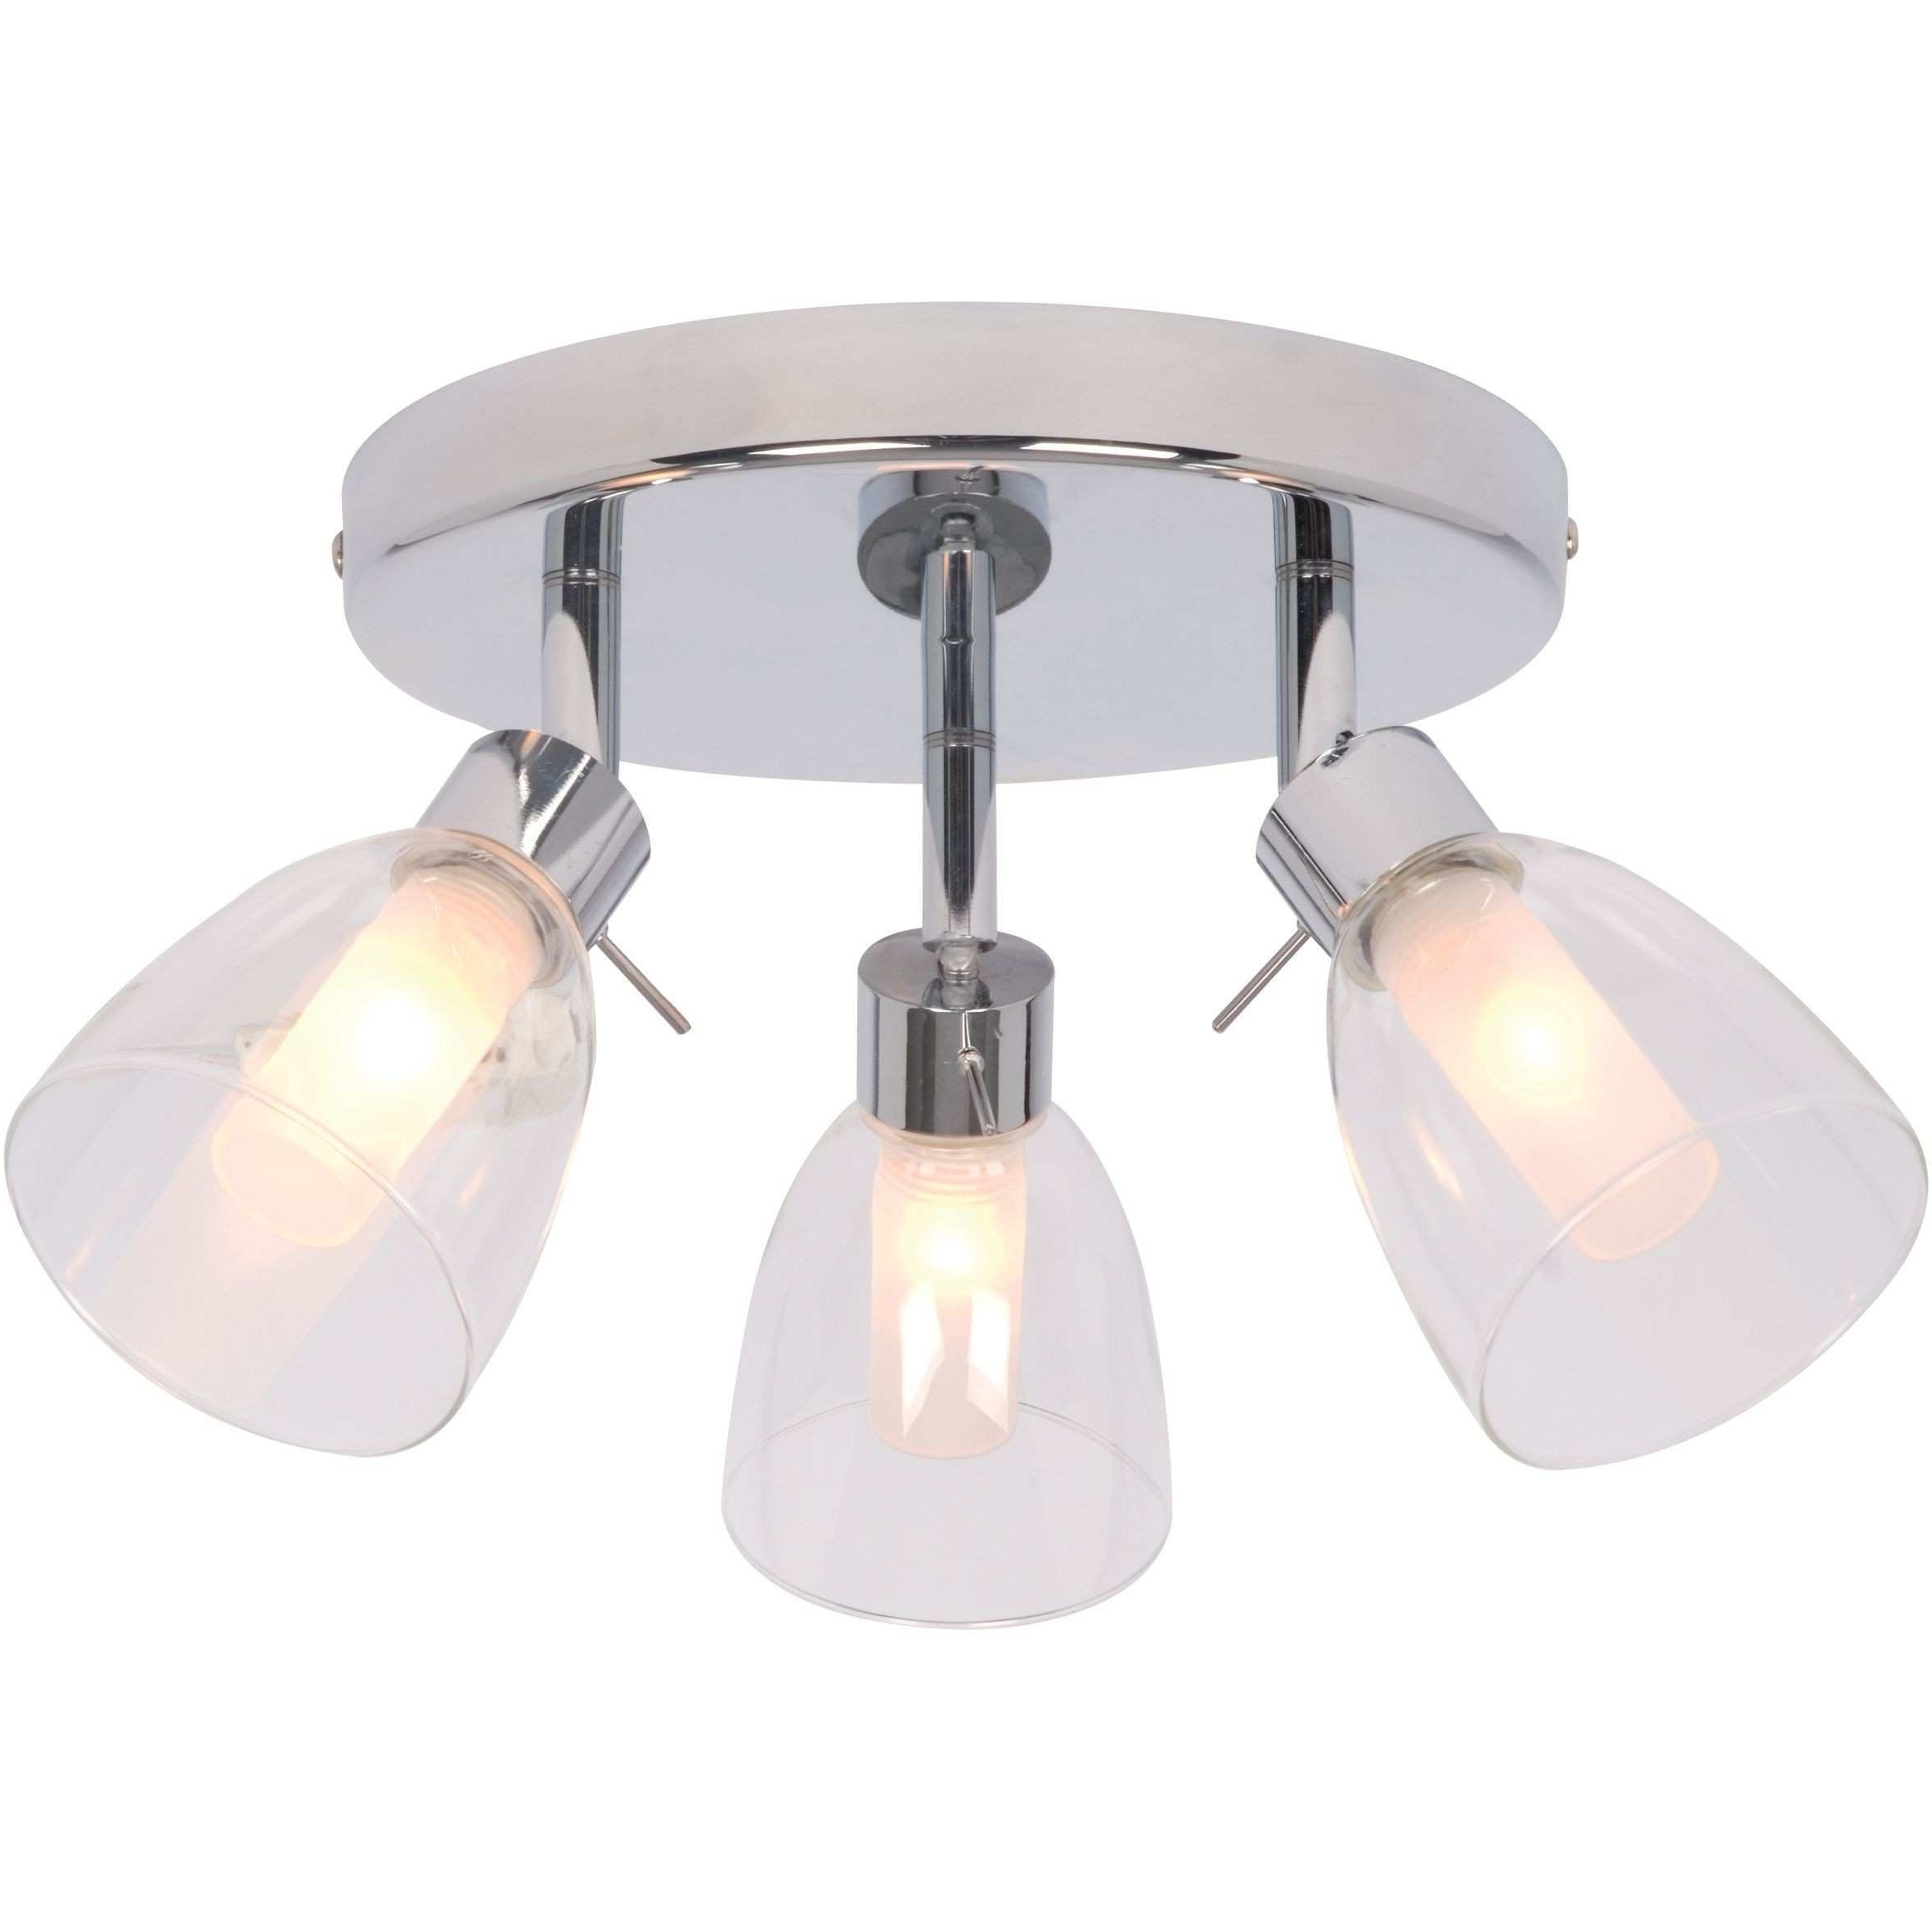 Best And Newest Steampunk Ceiling Light Elegant Lightsb&q G9 Halogen Bathroom Within Outdoor Ceiling Lights At B&q (View 15 of 20)